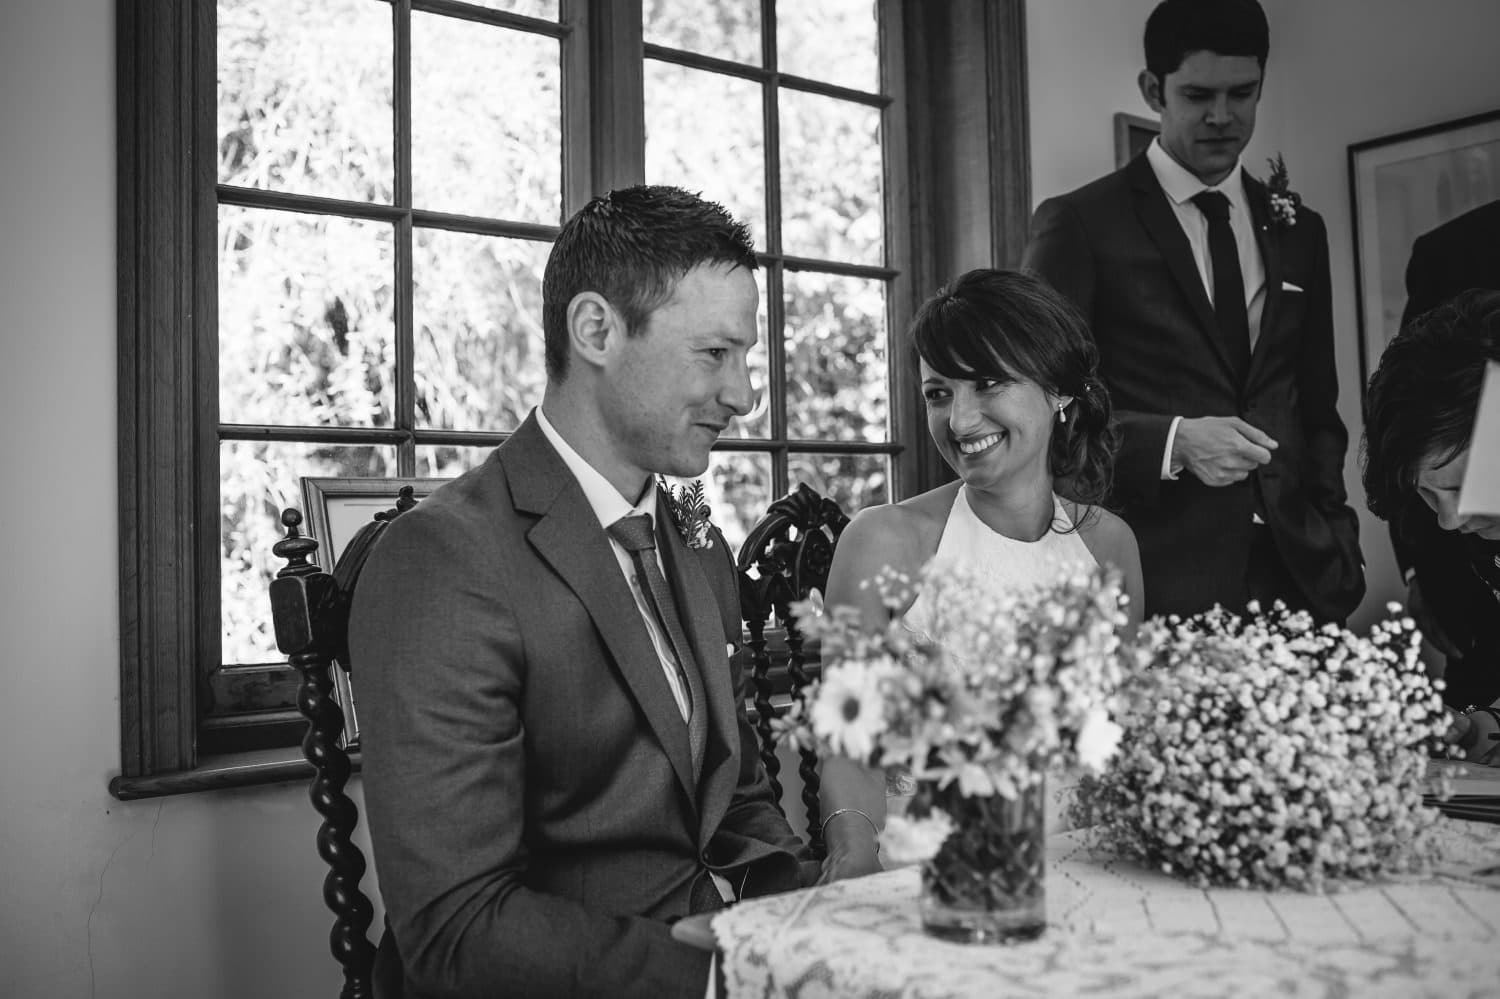 wedding photography in black and white of the ceremony at Bodrhyddan Hall north wales